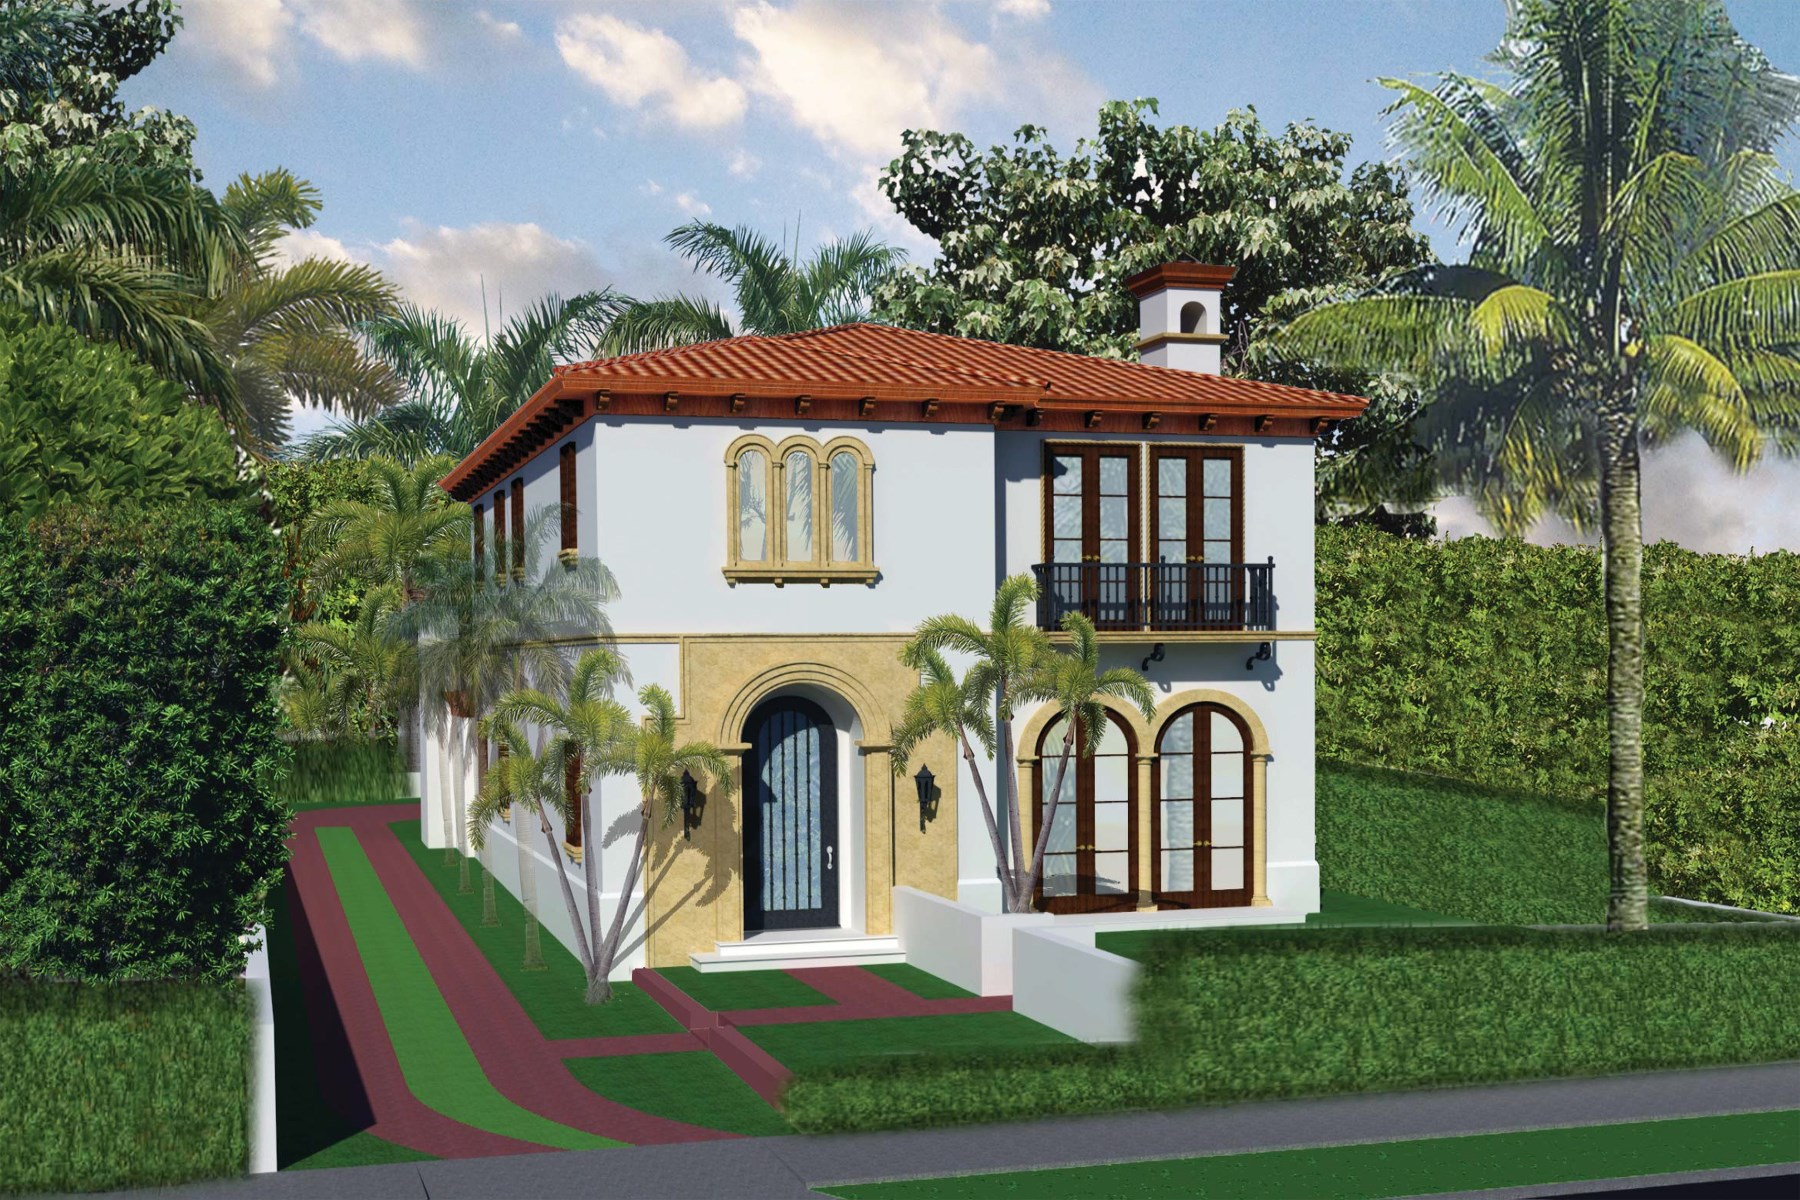 Maison unifamiliale pour l Vente à Palm Beach Chic In Town New Construction 444 Chilean Ave Palm Beach, Florida, 33480 États-Unis